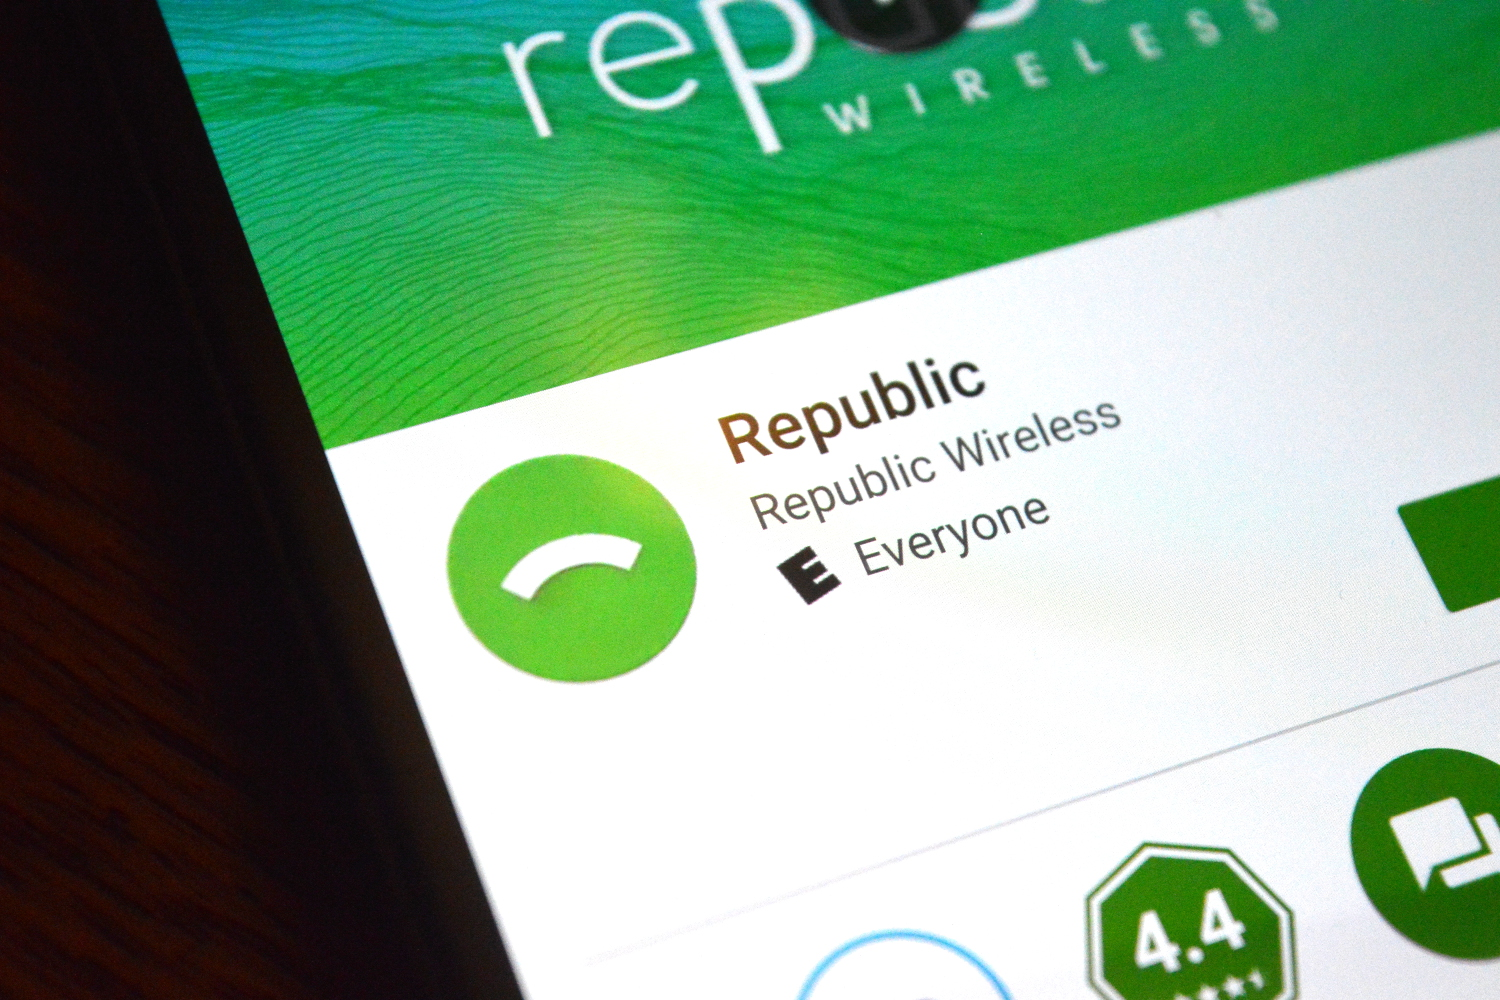 Republic Wireless wants to give you six months of service absolutely free